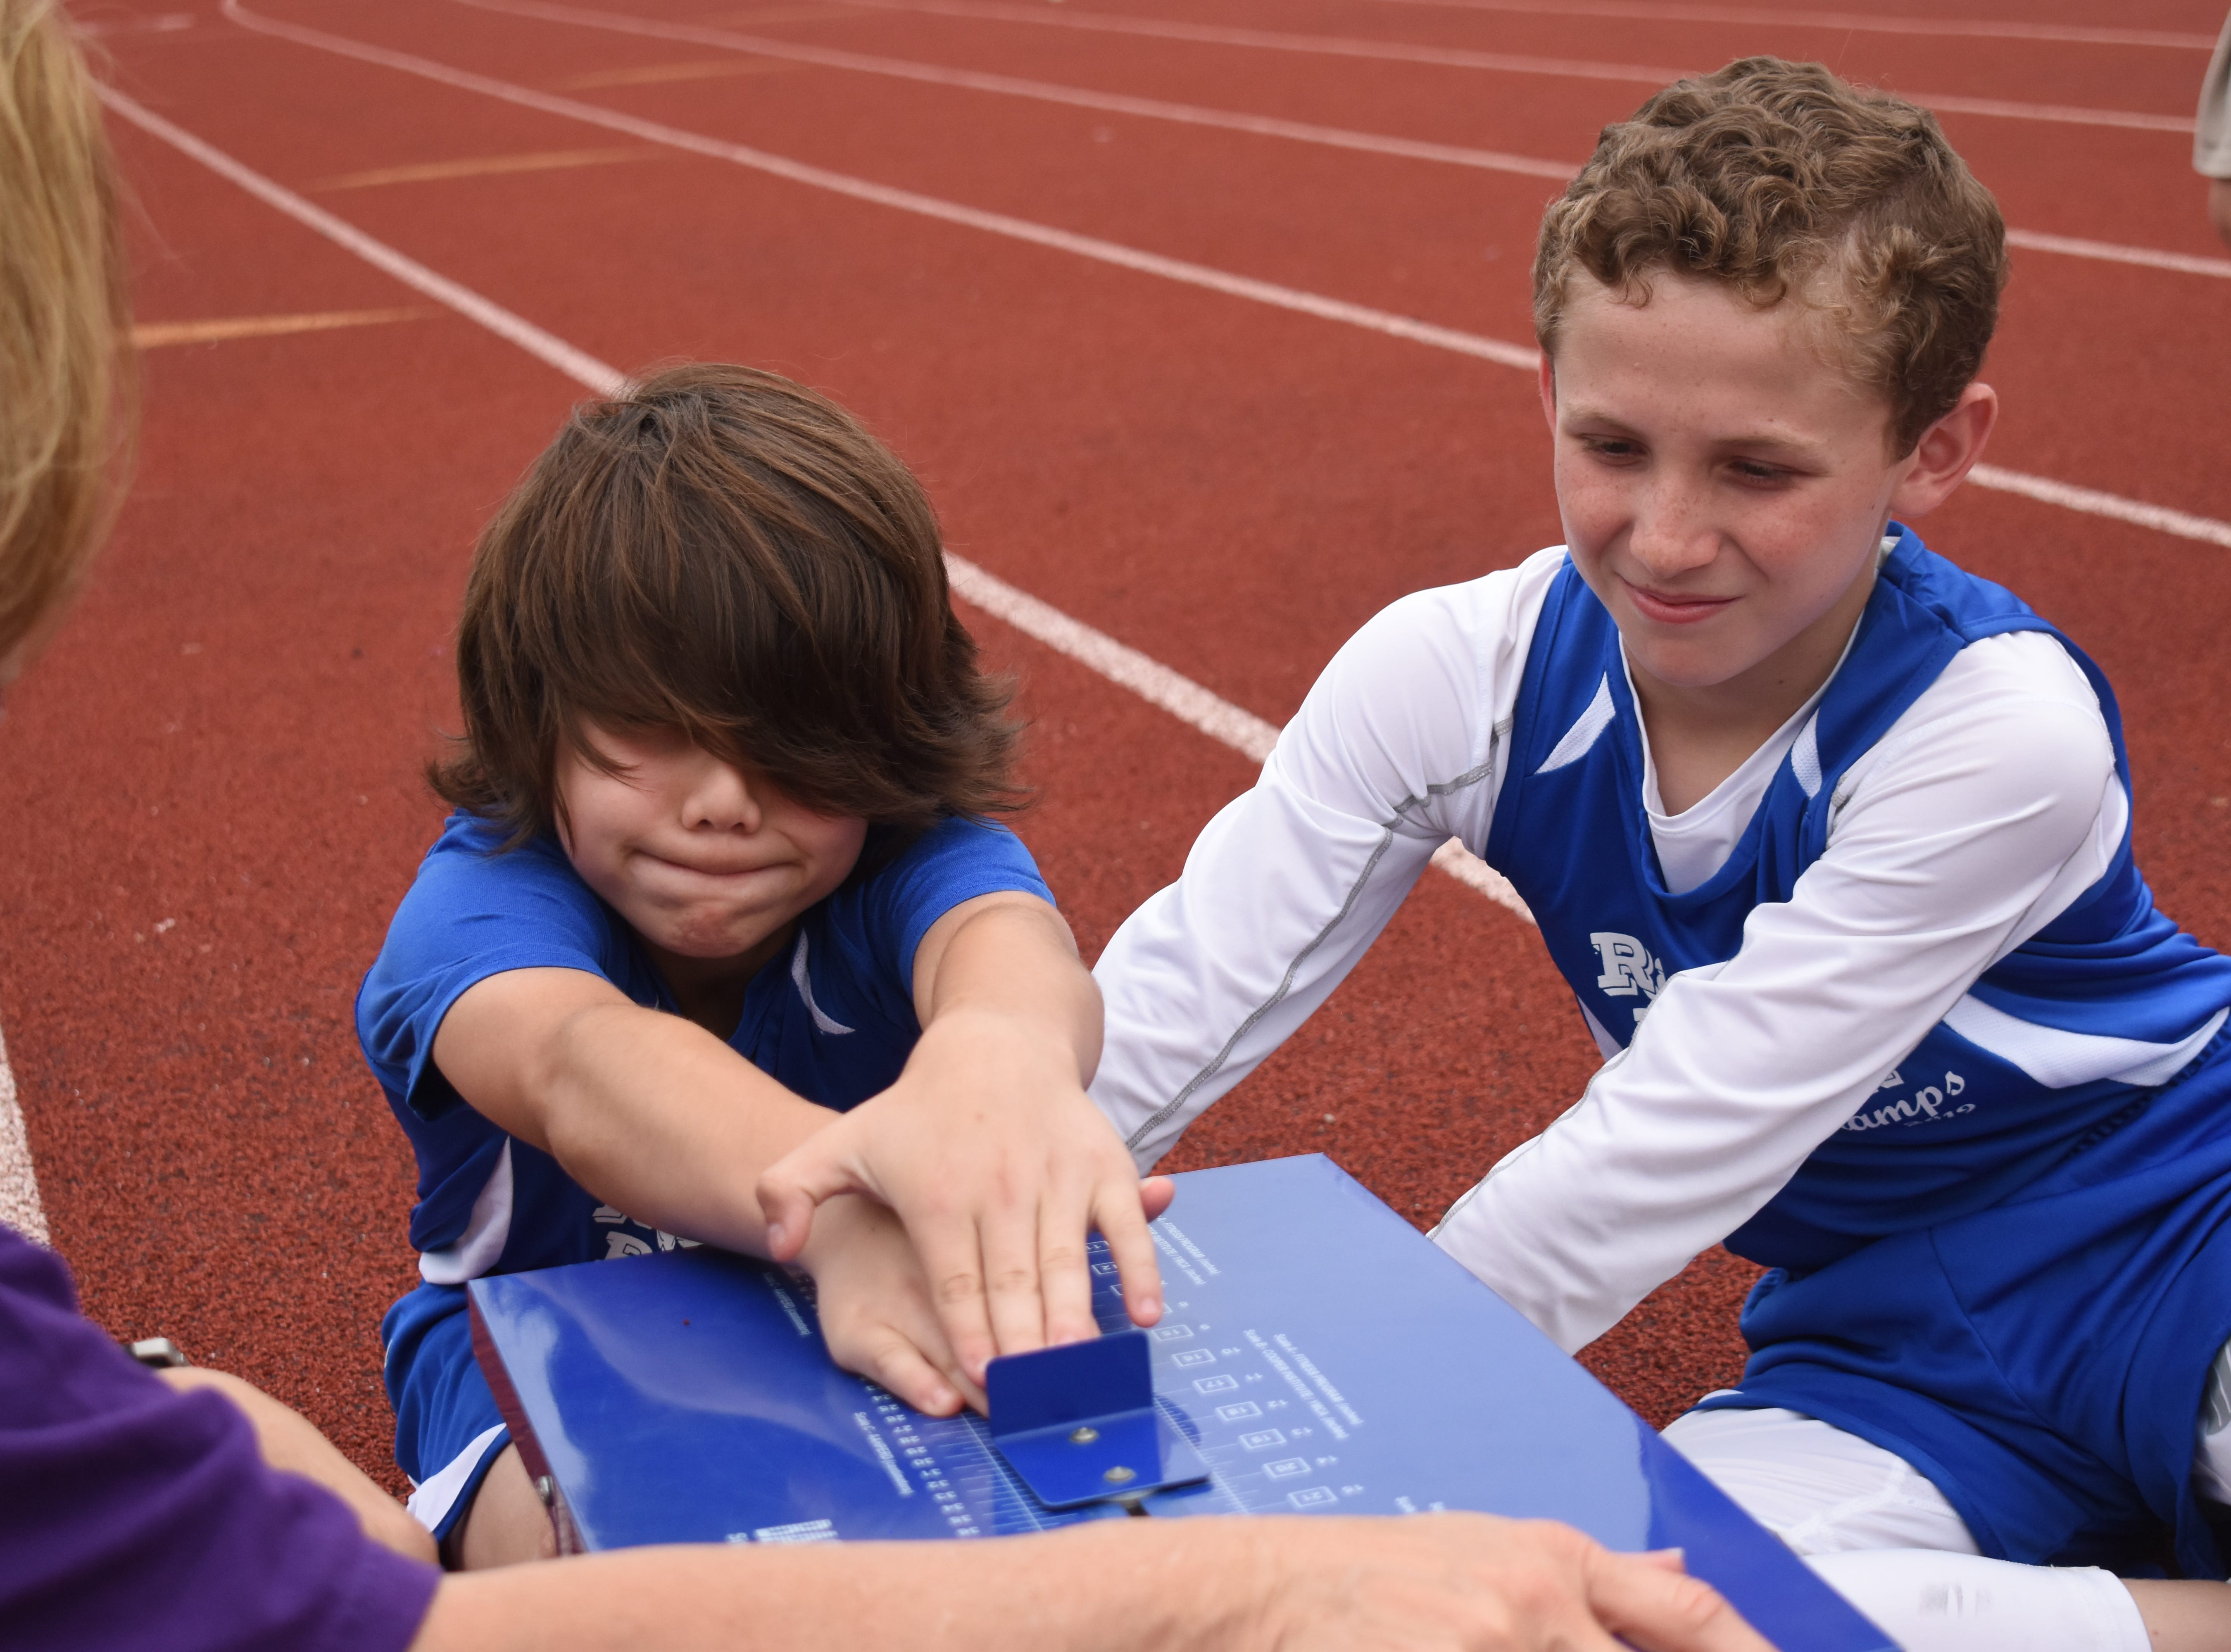 Bryce Warthen (left) of Hayden Lawrence Elementary School, completes a sit and reach. Bryce along with Jacob Dean of Nachman Elementary School are part the 2019 Rapides Parish Fitness Team. They and four other Rapides Parish elementary school students will compete in the 2019 State Championship Fitness Meet to be held Saturday, April 27, 2019 at Alexandria Senior High School. The meet is part of the Governor's Council on Fitness and Sports. Students from throughout Louisiana will compete in seven events: 50-yard dash, sit and reach, pull-ups,  shuttle run, curl-ups (sit-ups), standing long jump, and the 600-yard run. For the past three years, the Rapides Parish Fitness Team has placed first at the meet. Dean was the highest scoring boy last year and won the title of 2018 Mr. Fitness for the State of Louisiana. The meet will be from 10 a.m. to 2 p.m.